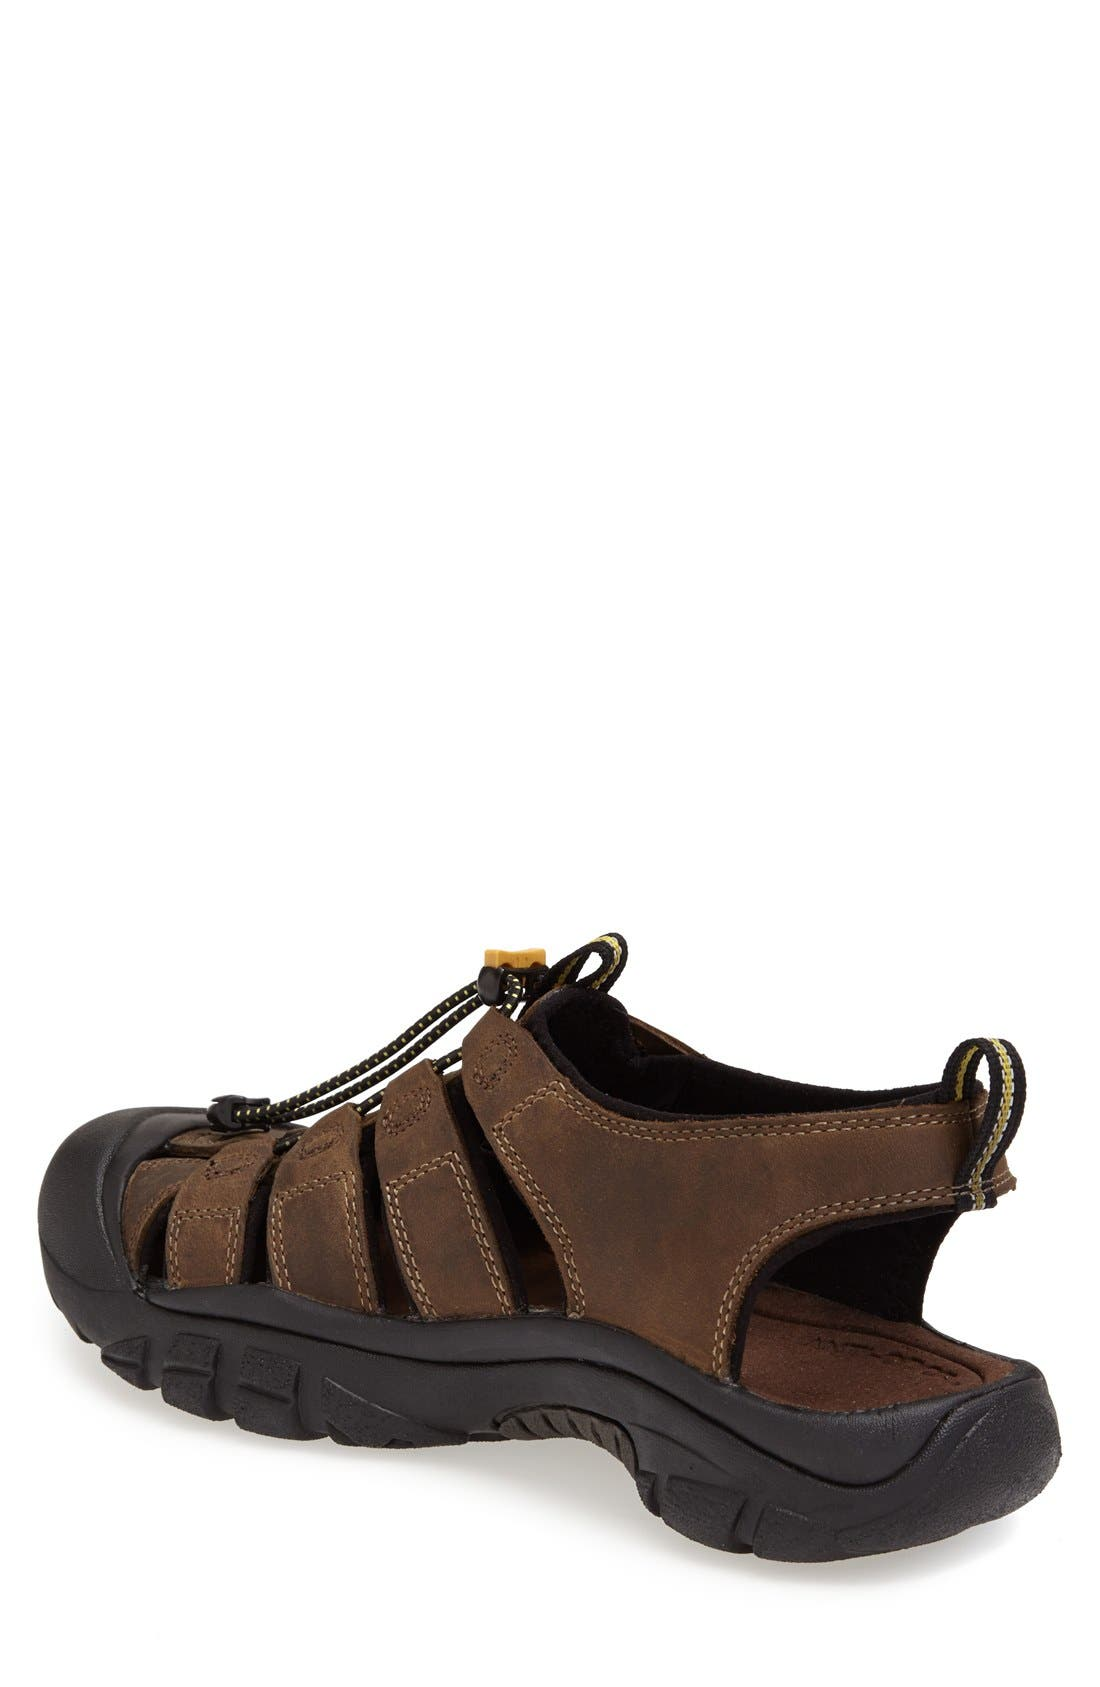 Alternate Image 2  - Keen 'Newport' Sandal (Men)